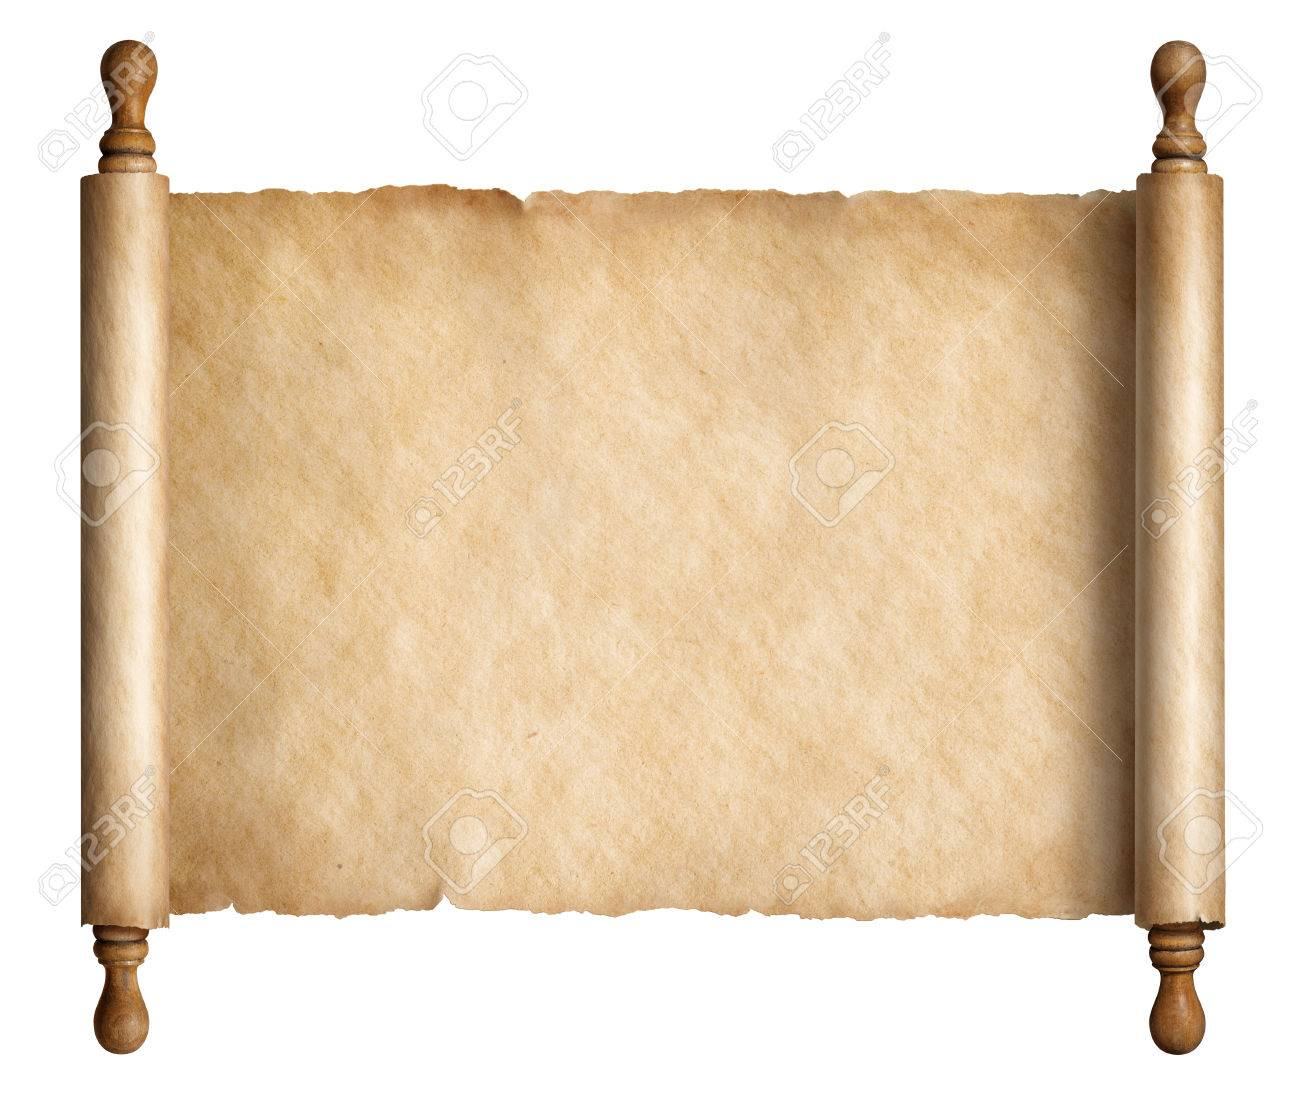 old paper scroll or ancient parchment isolated 3d illustration stock